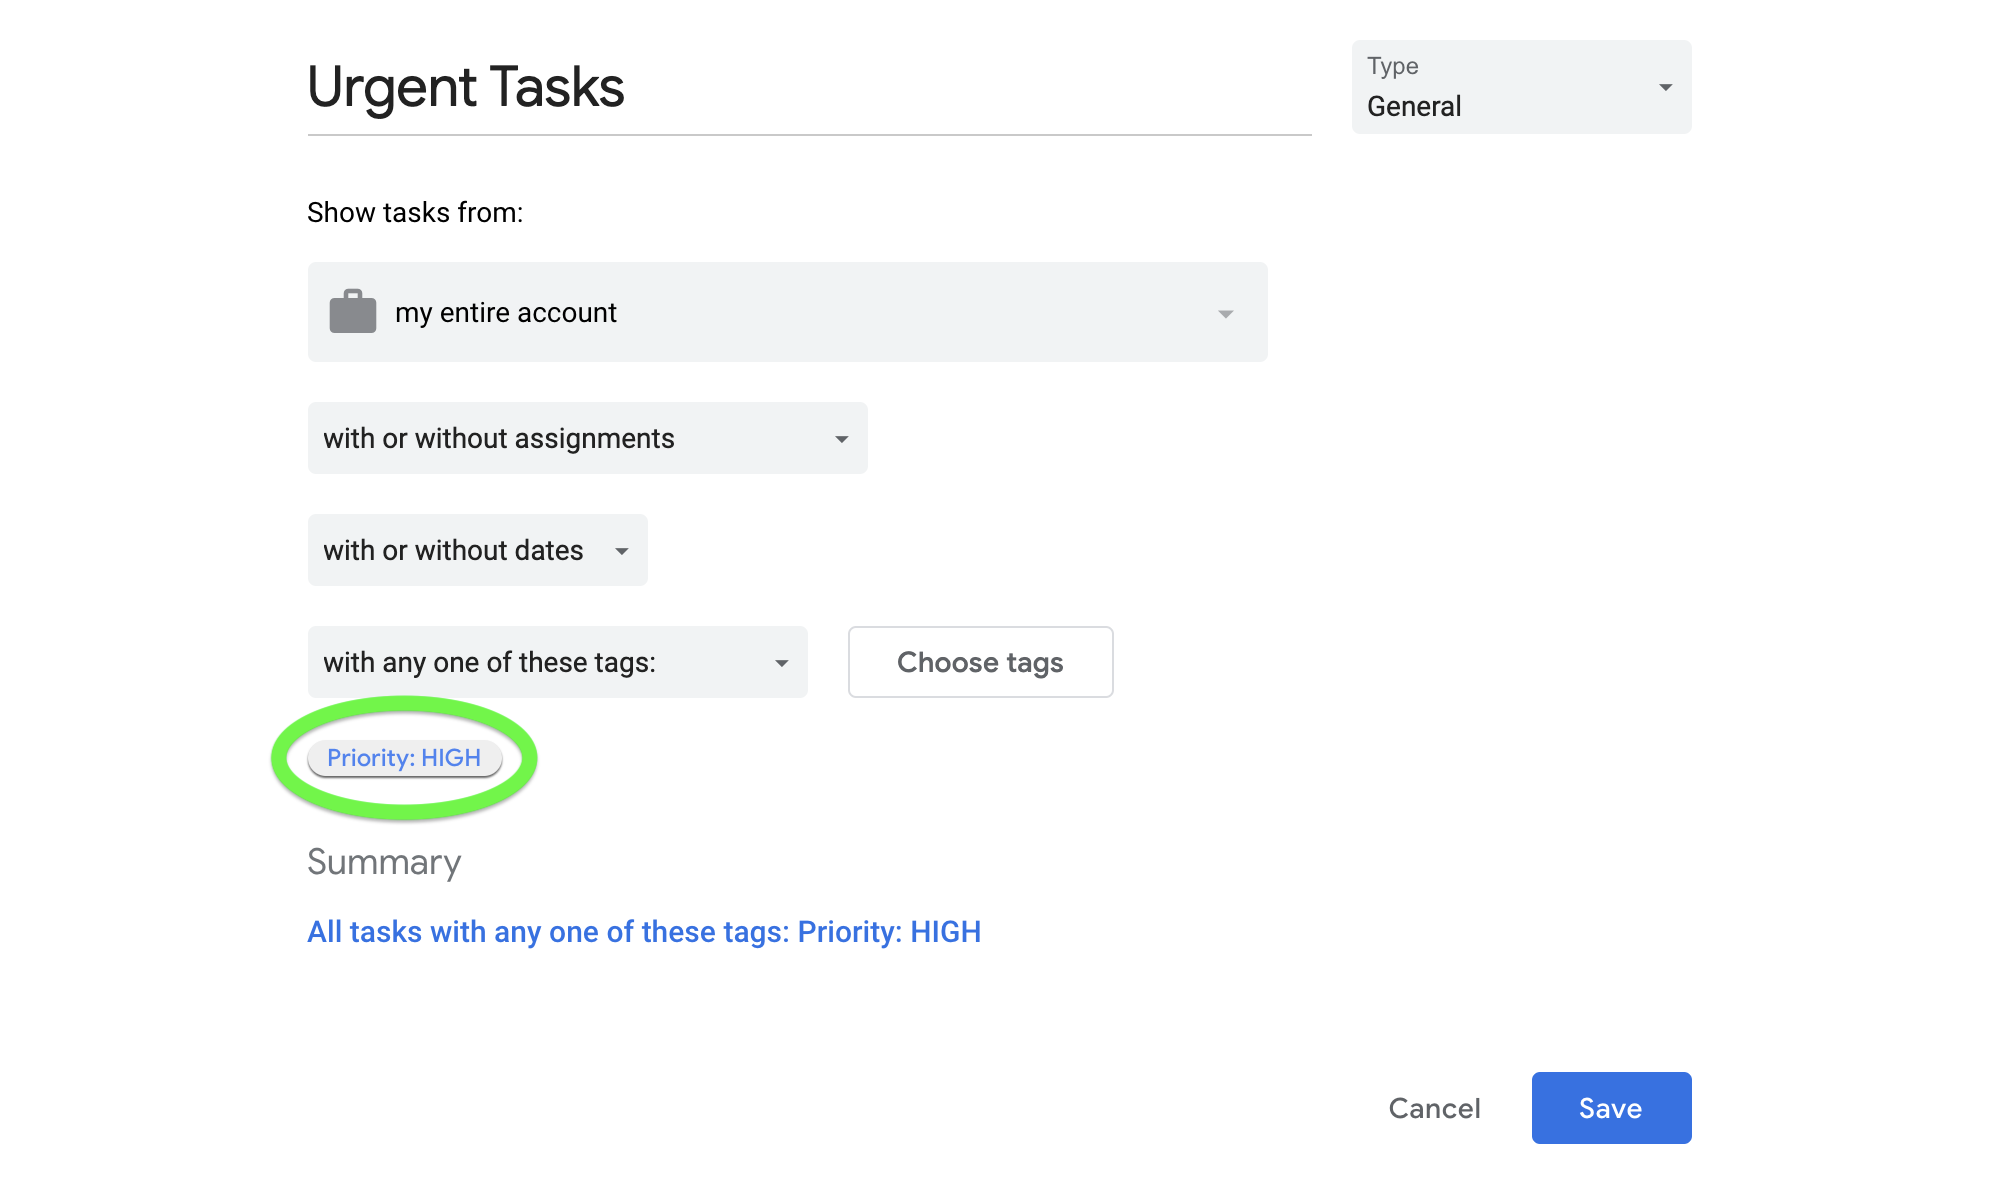 Smart Queue set up to search for tasks with the tag Priority: HIGH